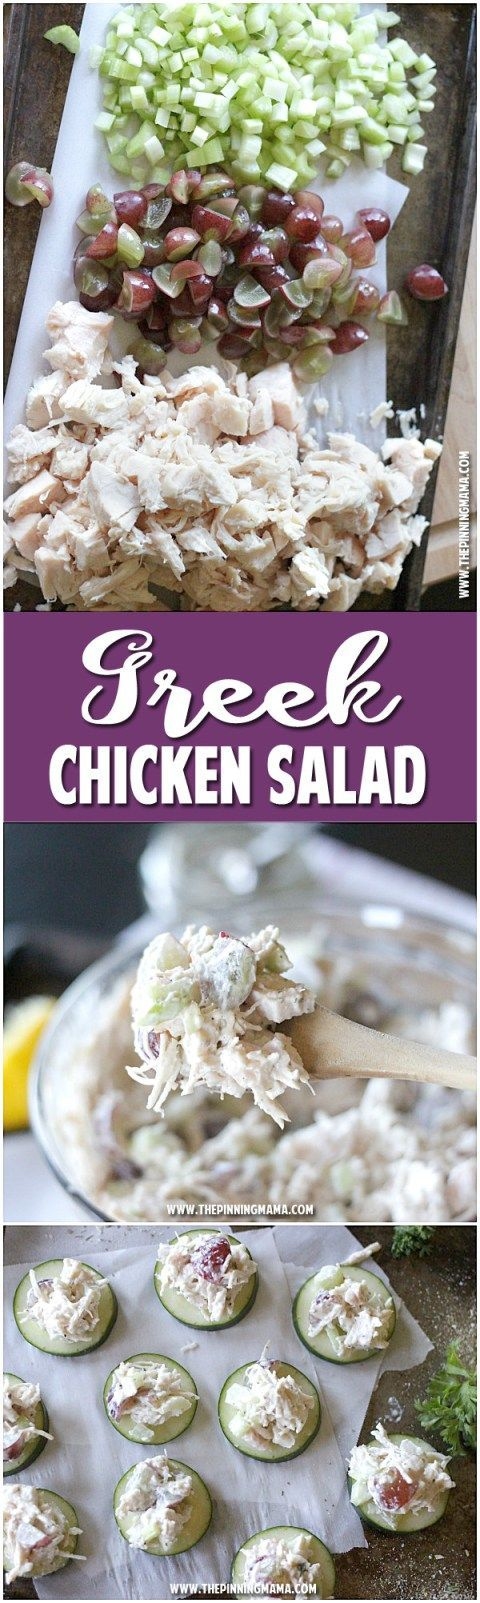 Greek Chicken Salad Recipe  This is AMAZING! Recipe includes directions to make it Whole30 compliant paleo gluten free dairy free and low carb! I didn't know healthy food tasted this good!